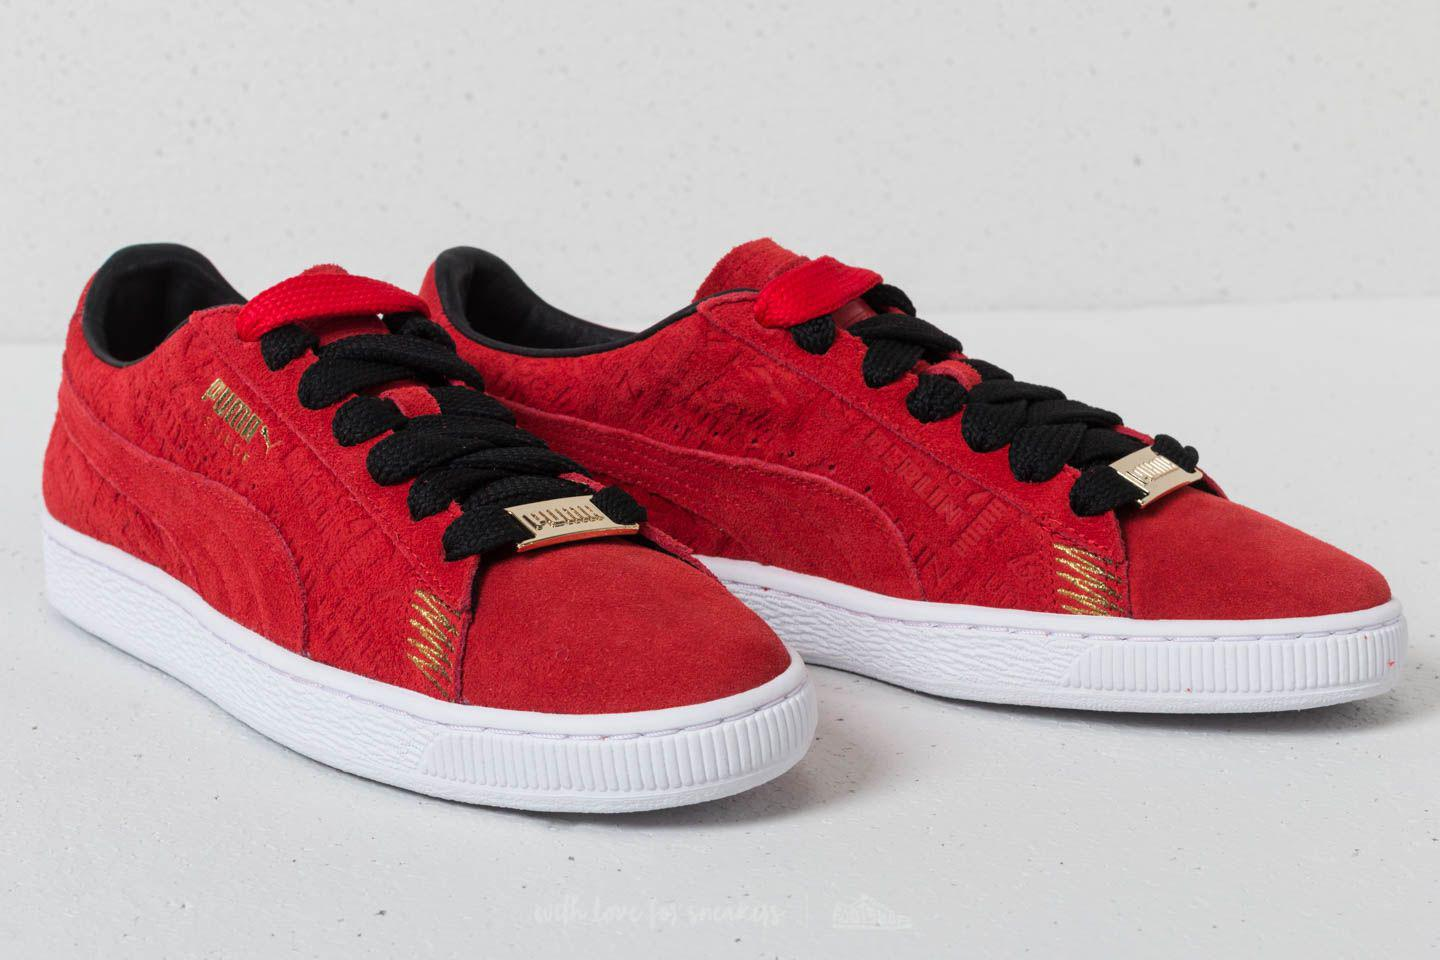 933c853c00a6 Lyst - PUMA Suede Classic Berlin Flame Scarlet-flame Scarlet in Red ...